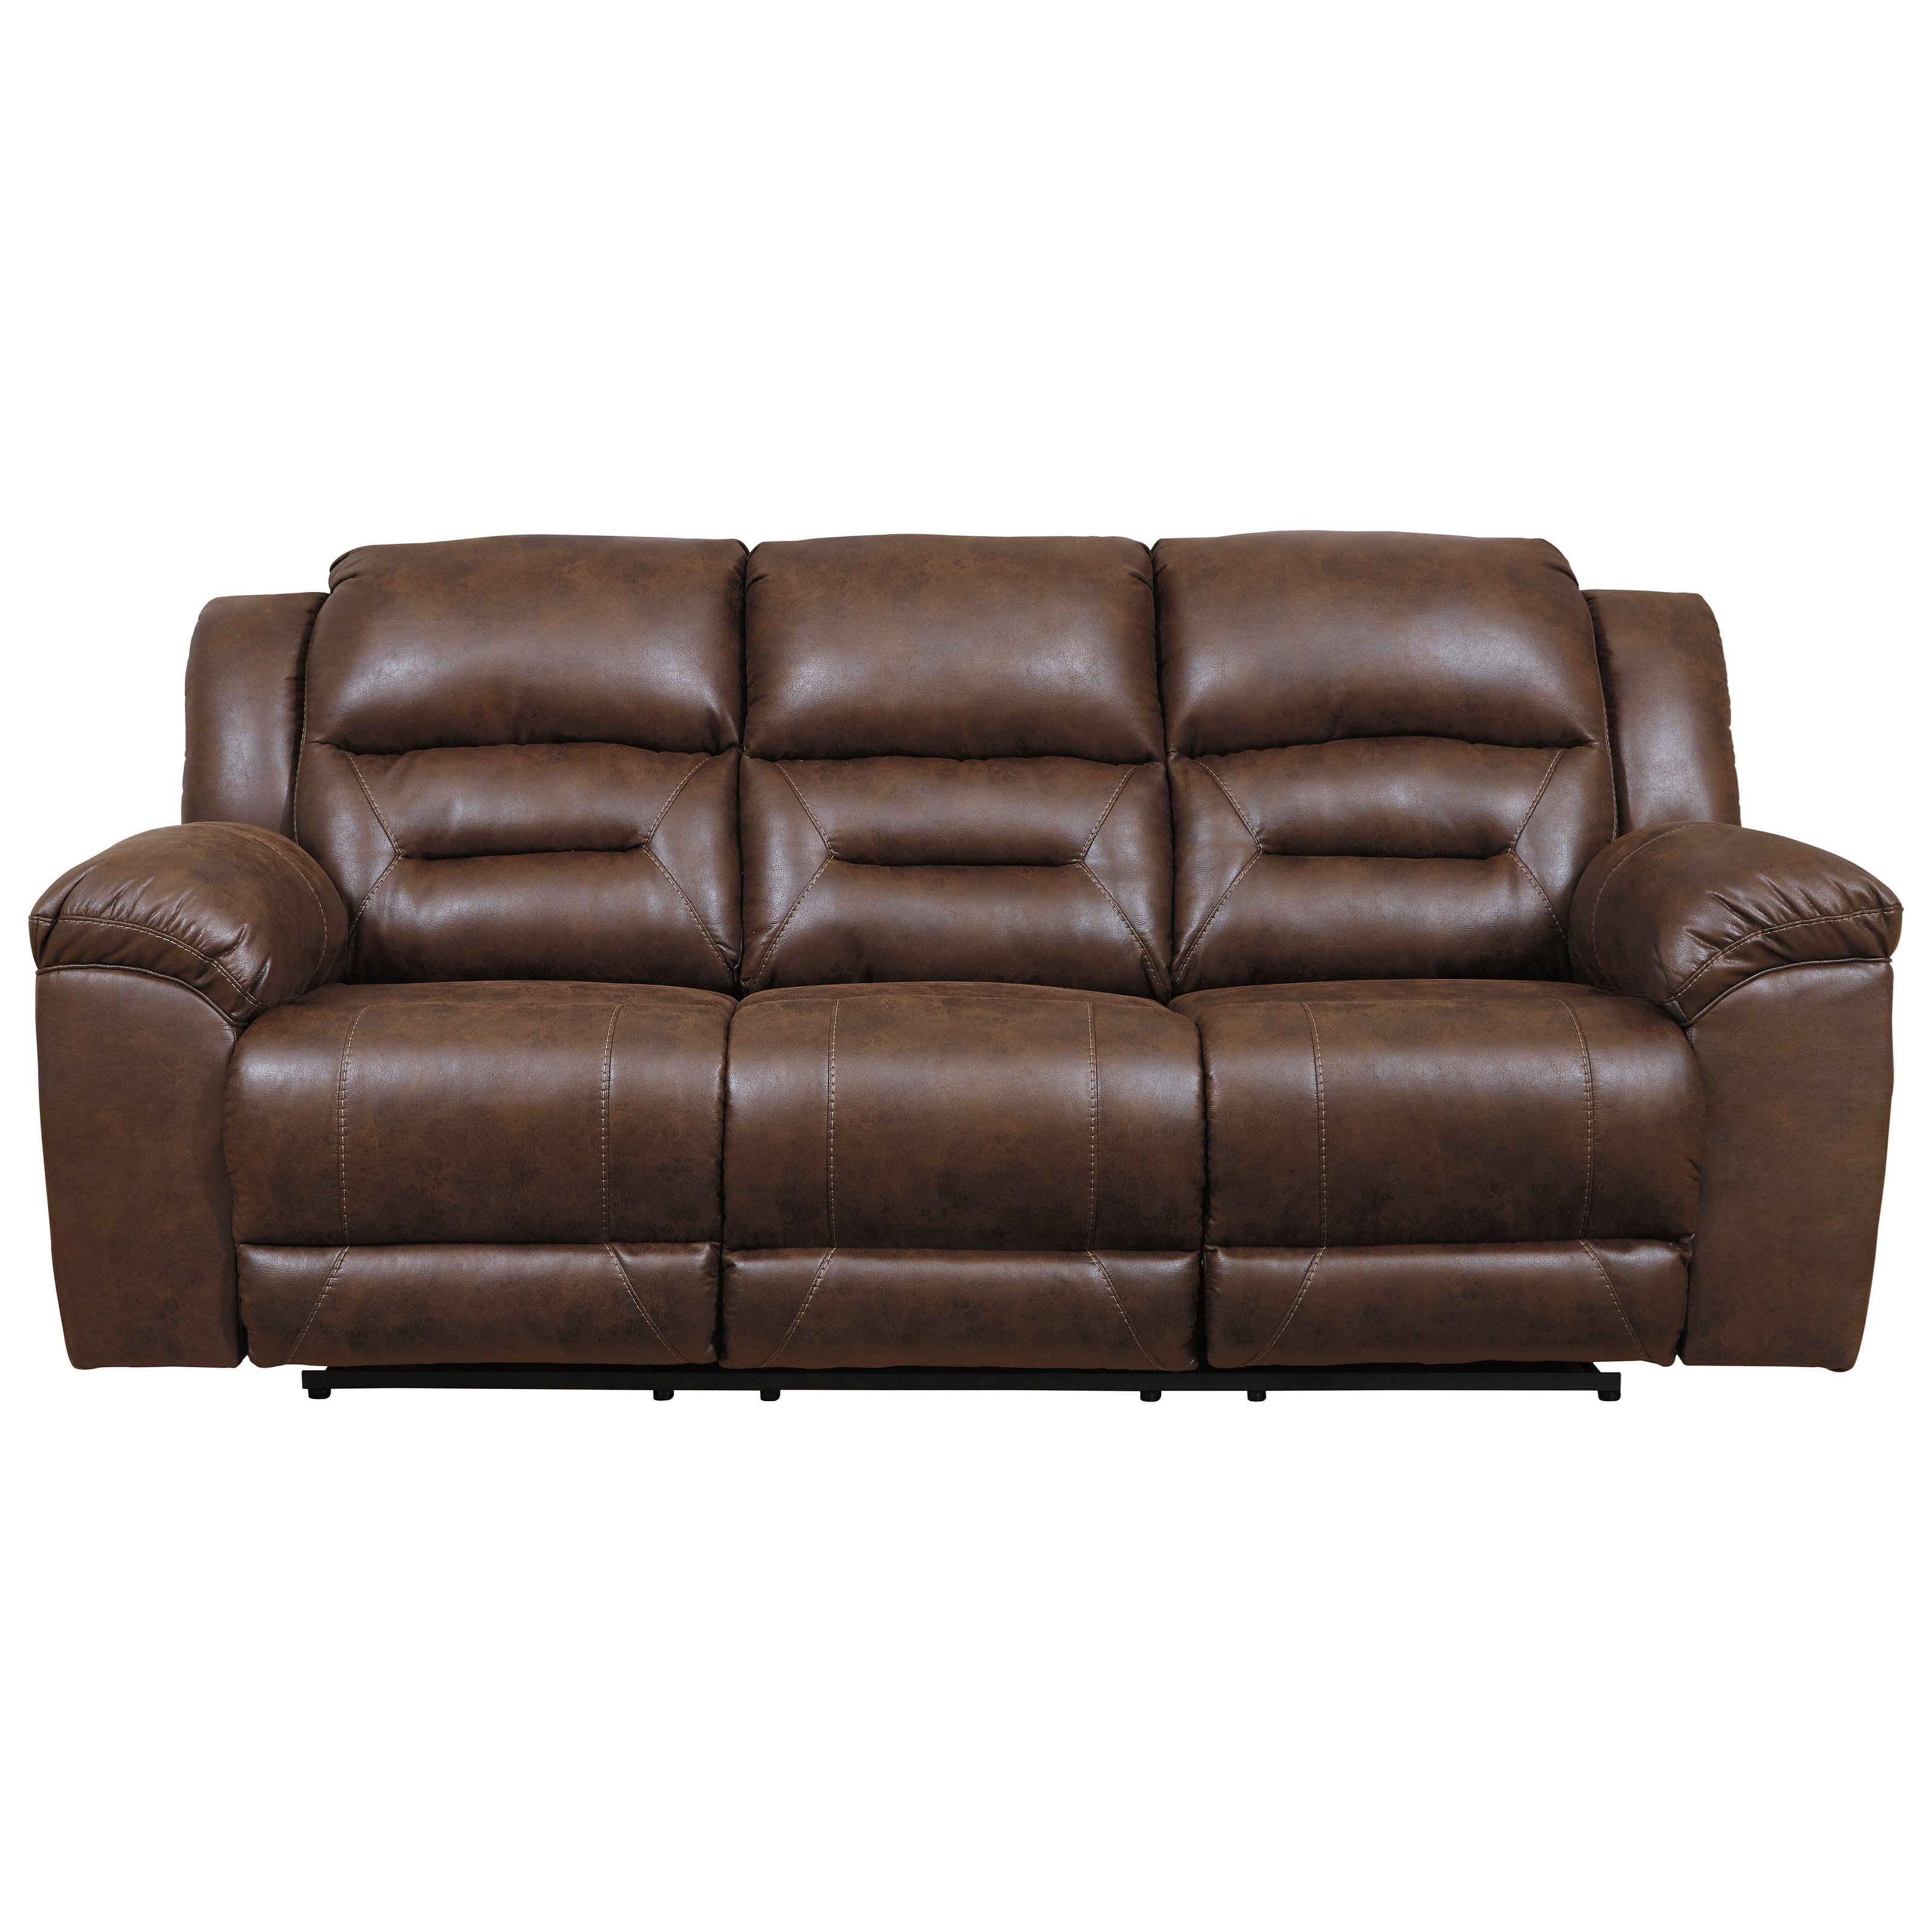 Stoneland Reclining Power Sofa by Signature Design by Ashley at Darvin Furniture